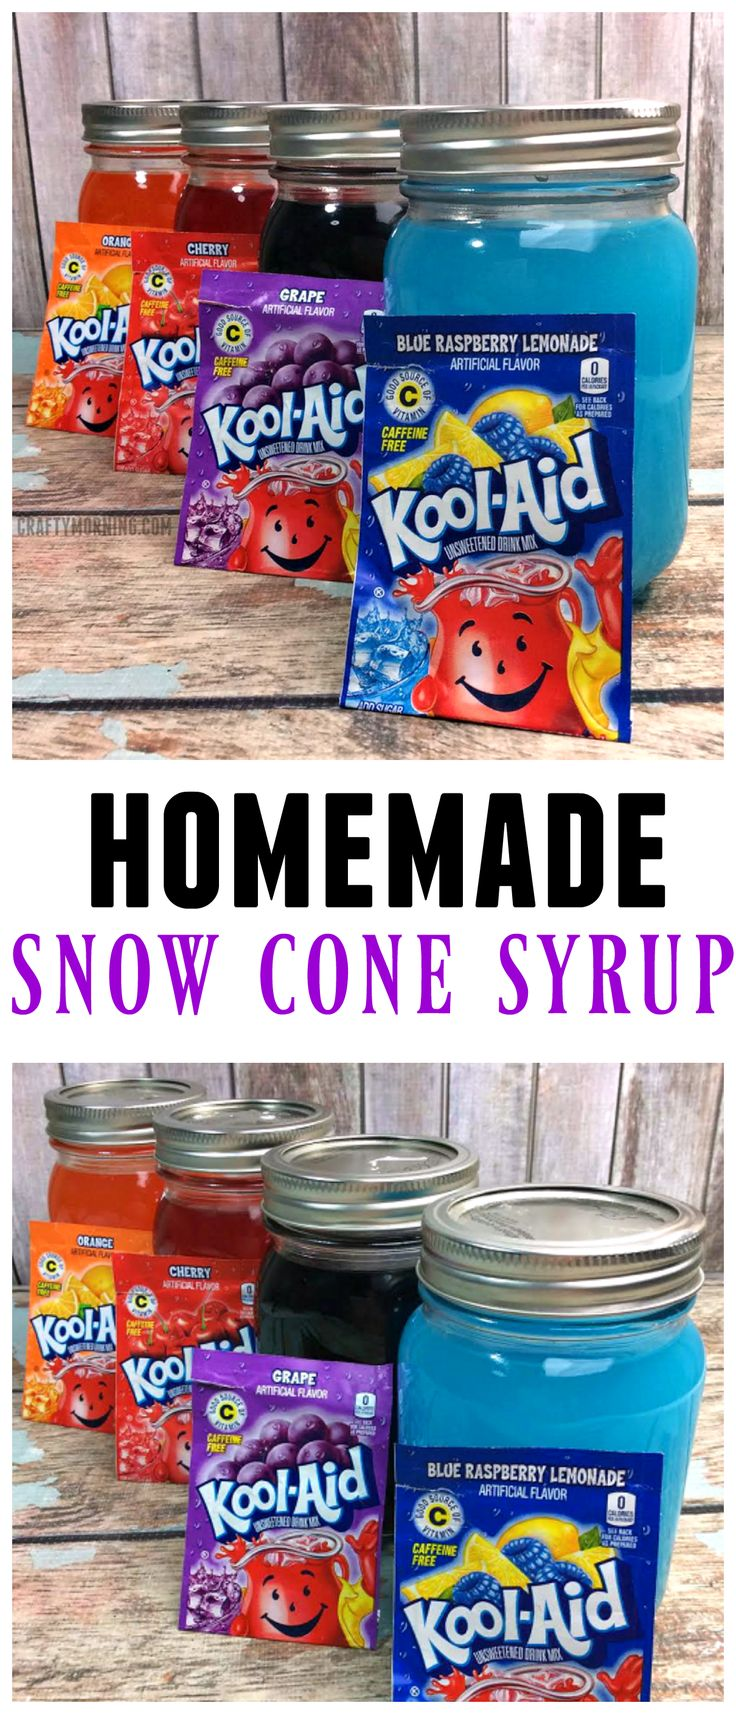 Homemade Snow Cone Syrup Recipe Using Kool-Aid Packets -8650